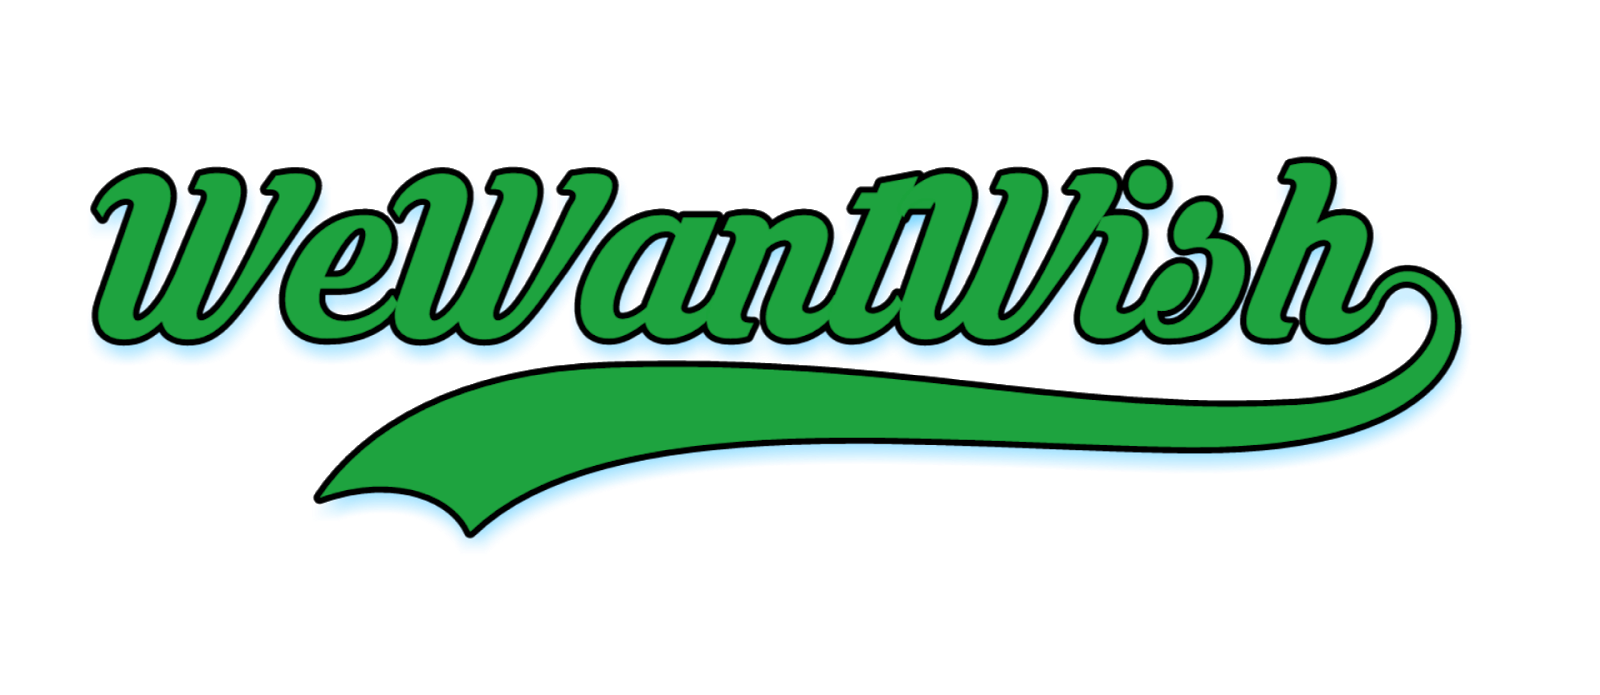 WeWantWish | Learn Program For Free, Web-Design, Technology Tips and Tricks